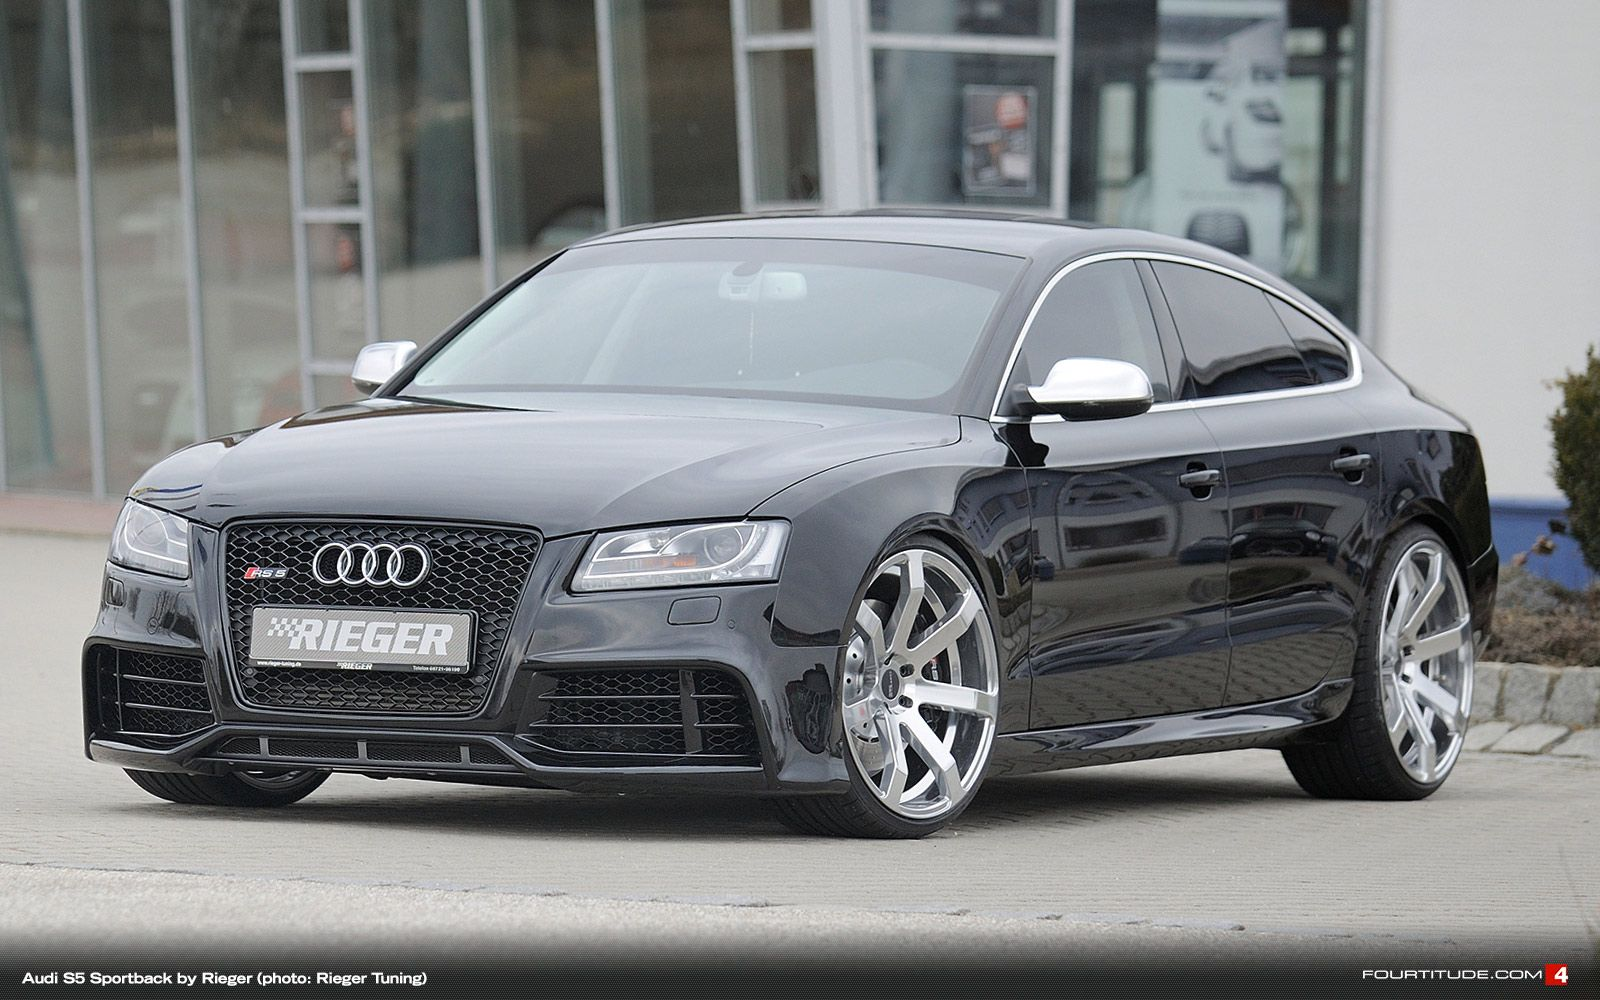 rieger tuning gives audi a5/s5 sportback an rs look - fourtitude